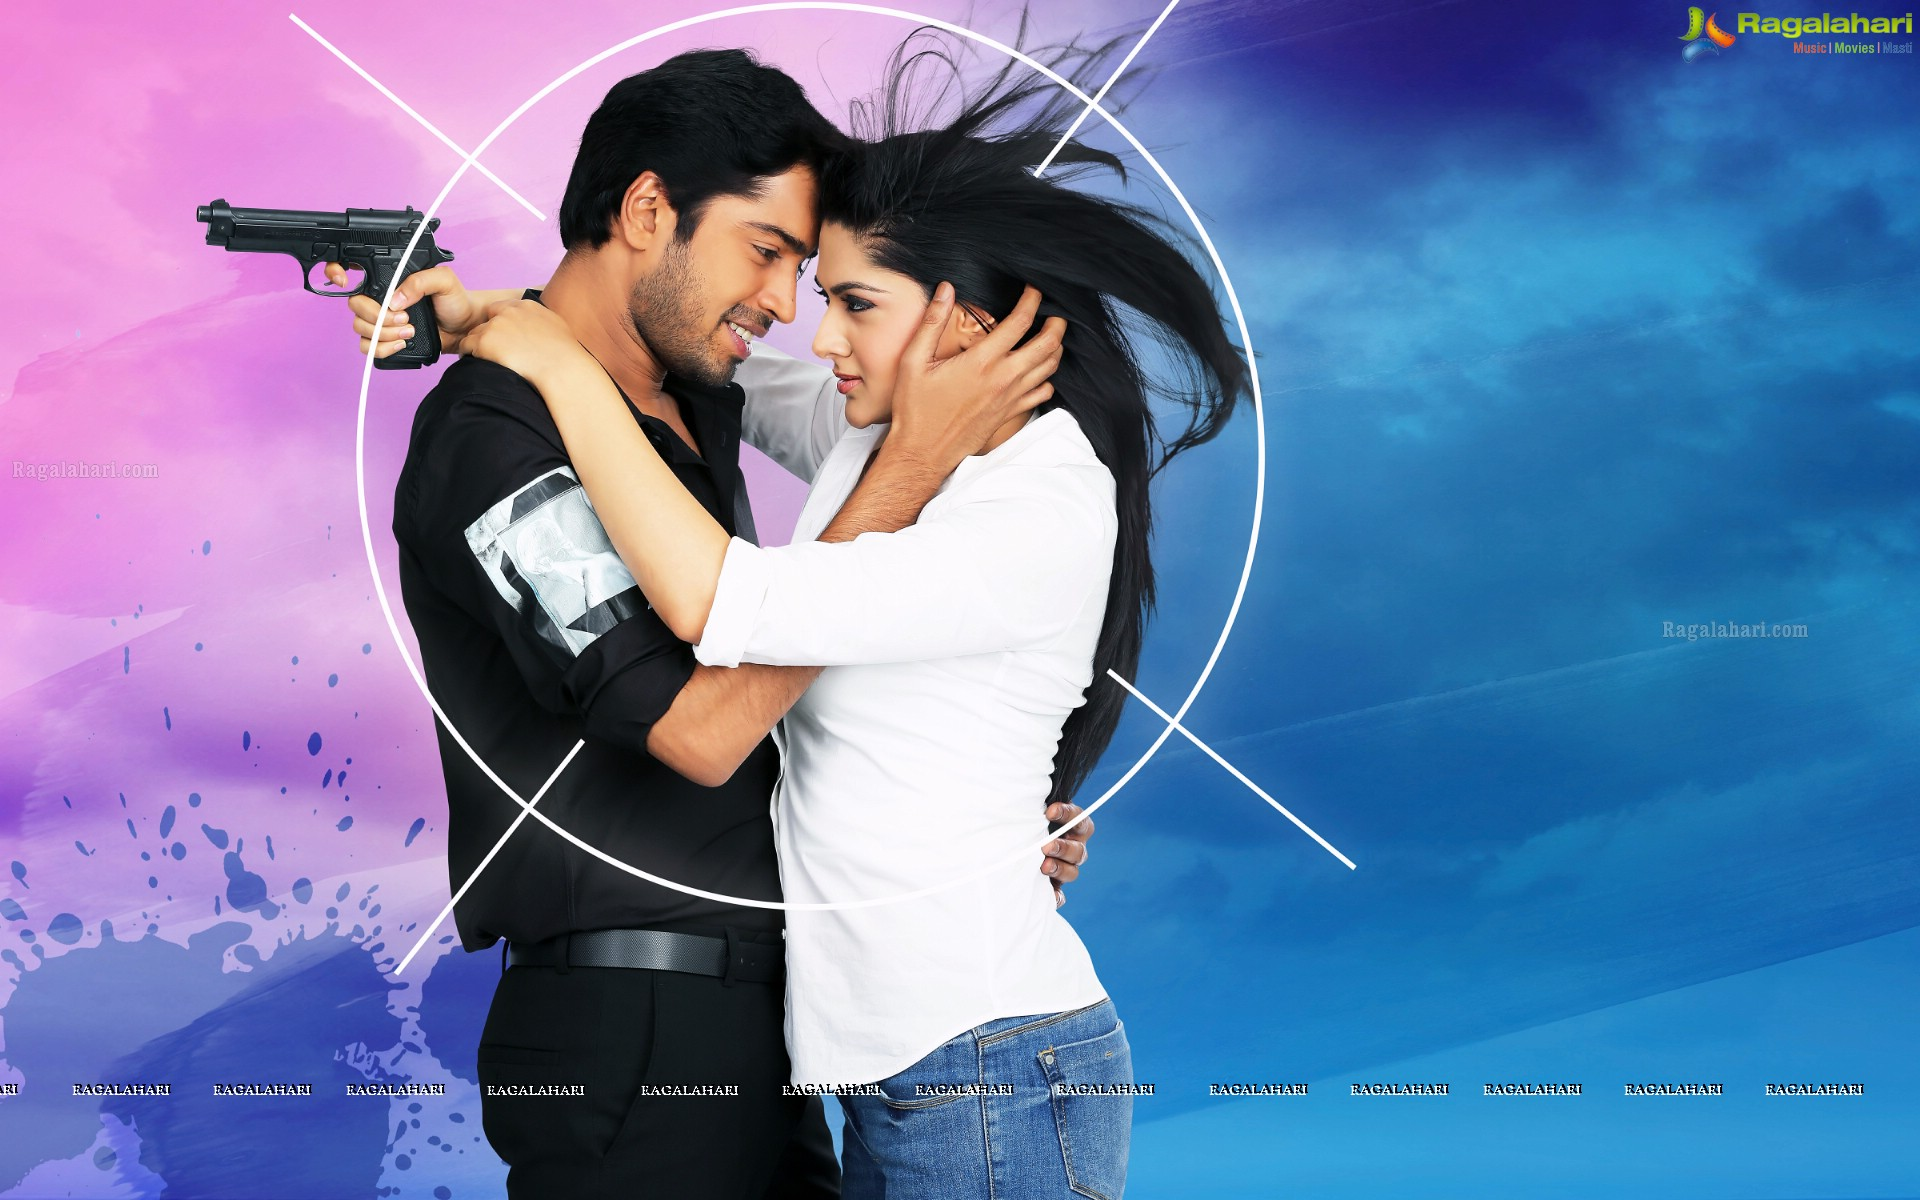 james bond hd wallpapers - hero: allari naresh, heroine: sakshi